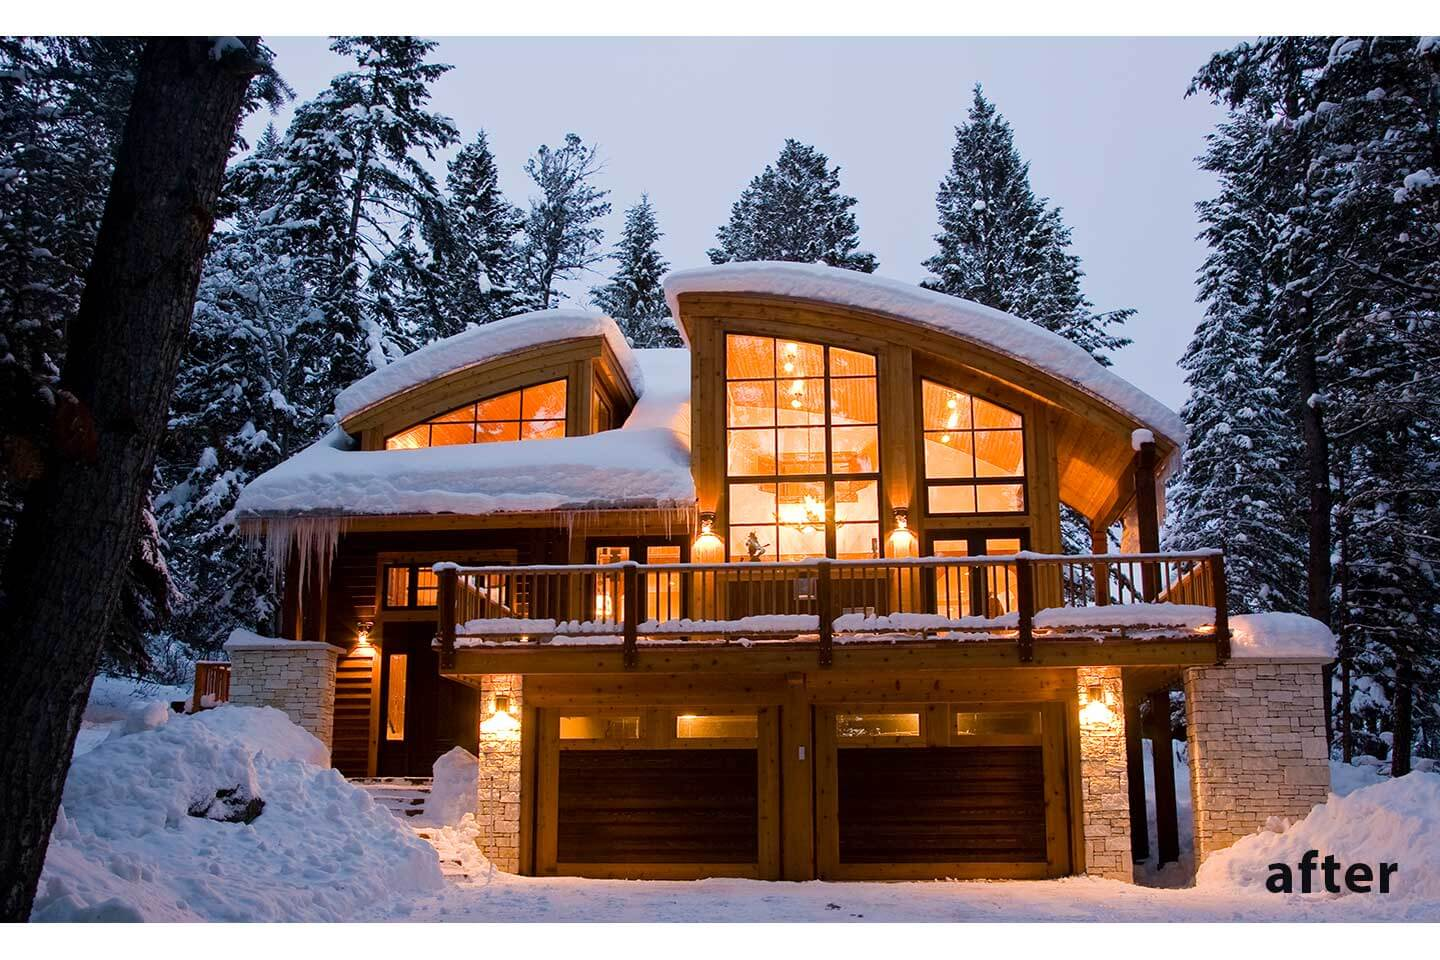 Ski lodge after the remodel and addition